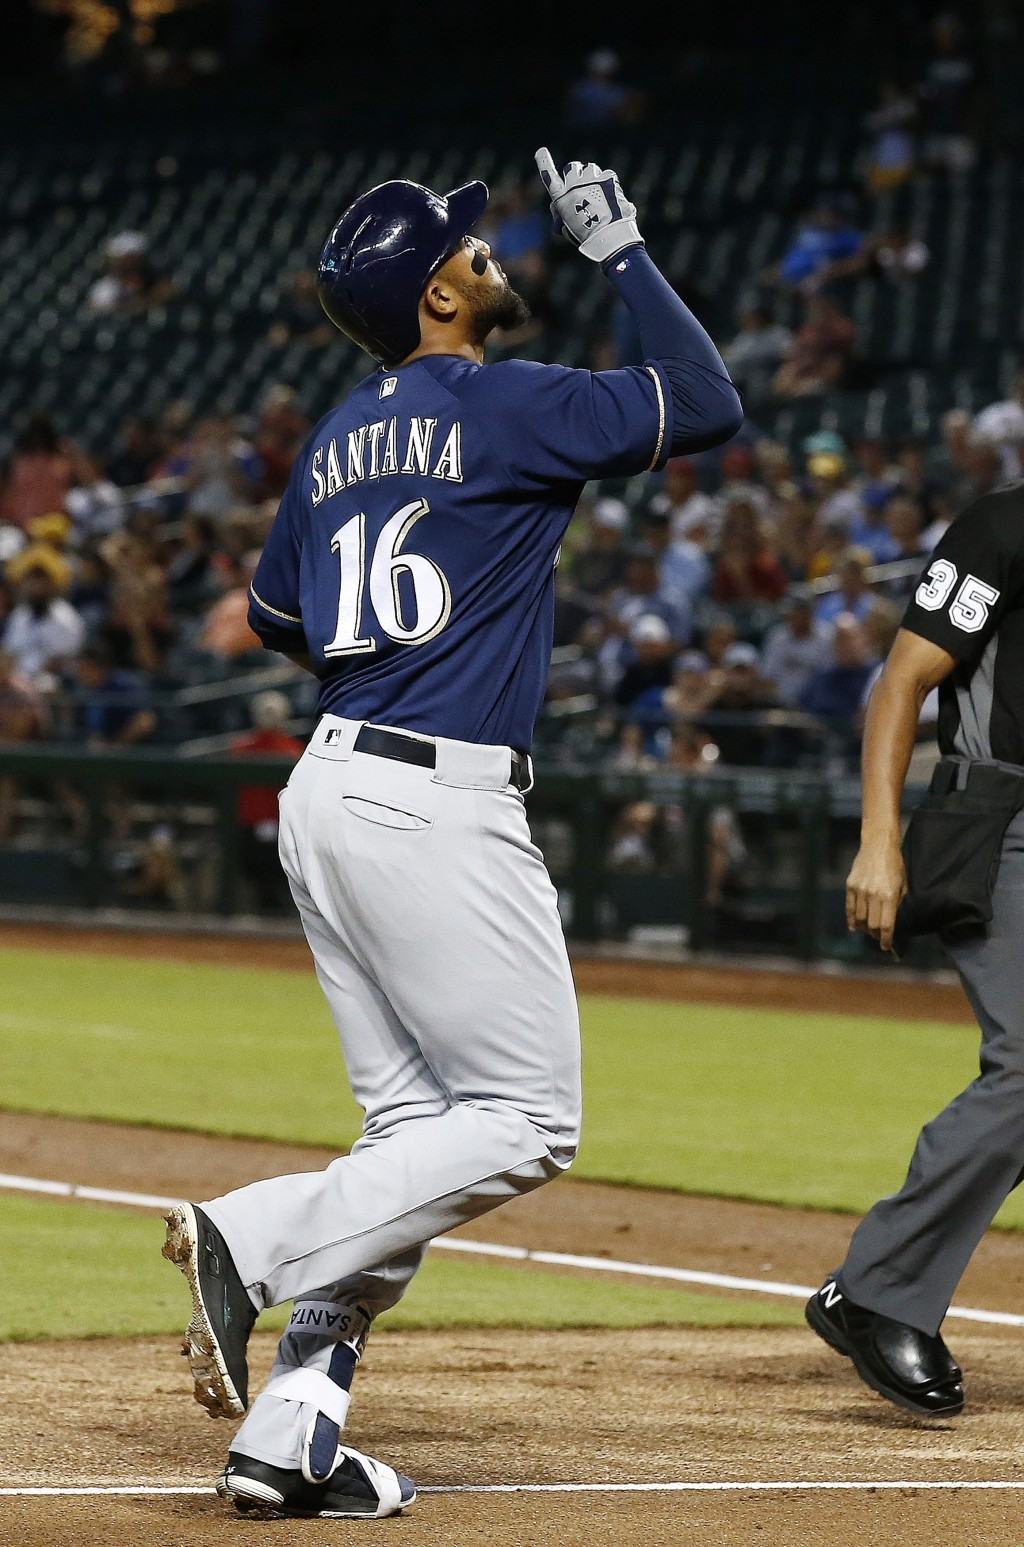 Milwaukee Brewers' Domingo Santana points to the sky after his home run against the Arizona Diamondbacks during the first inning of a baseball game We